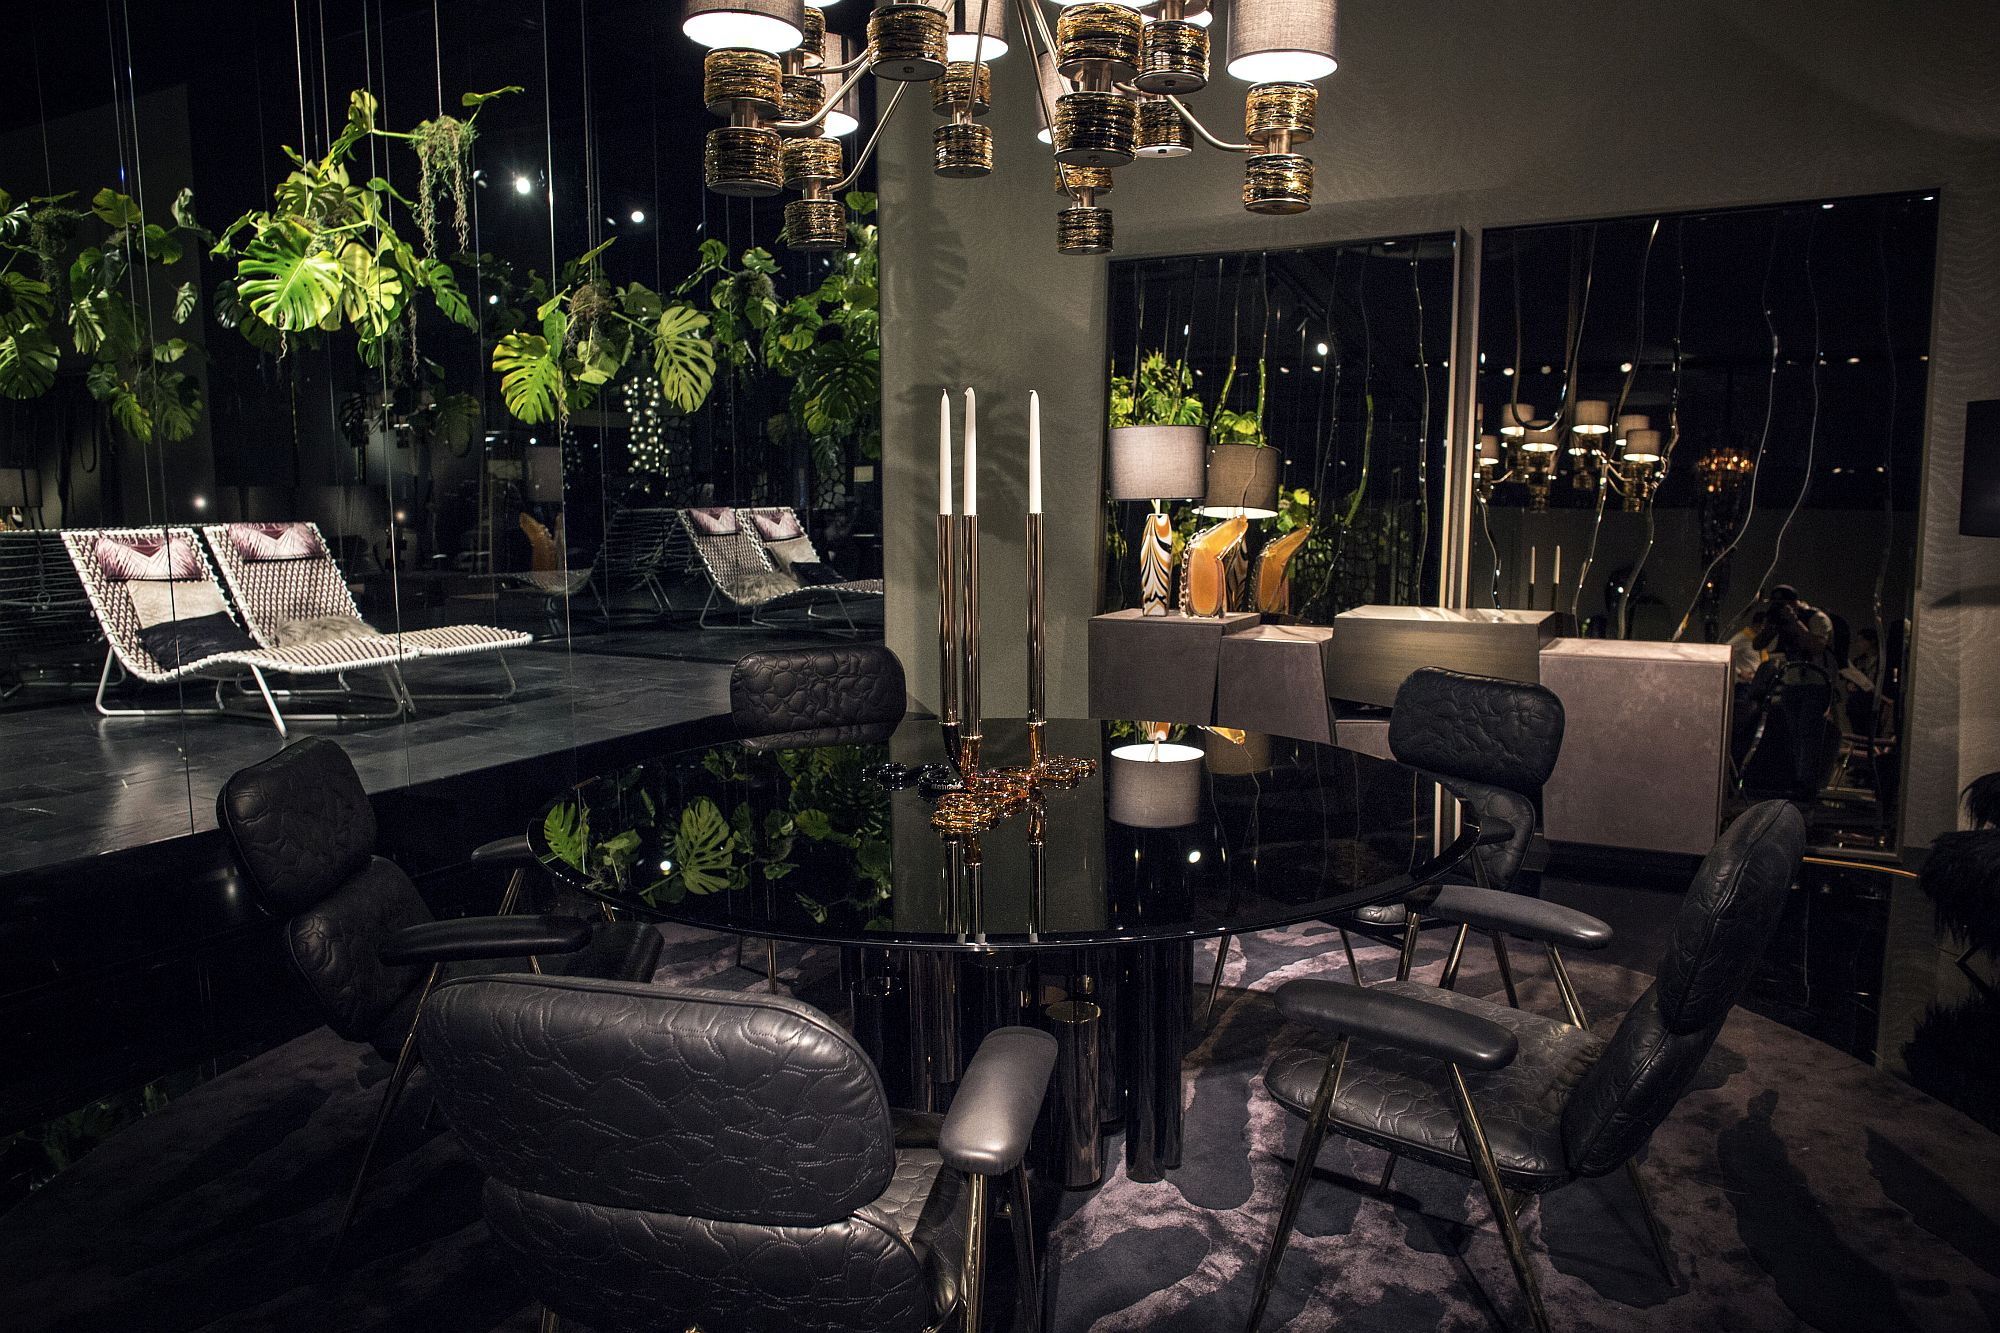 The-black-dining-table-becomes-the-focal-point-of-the-dining-space